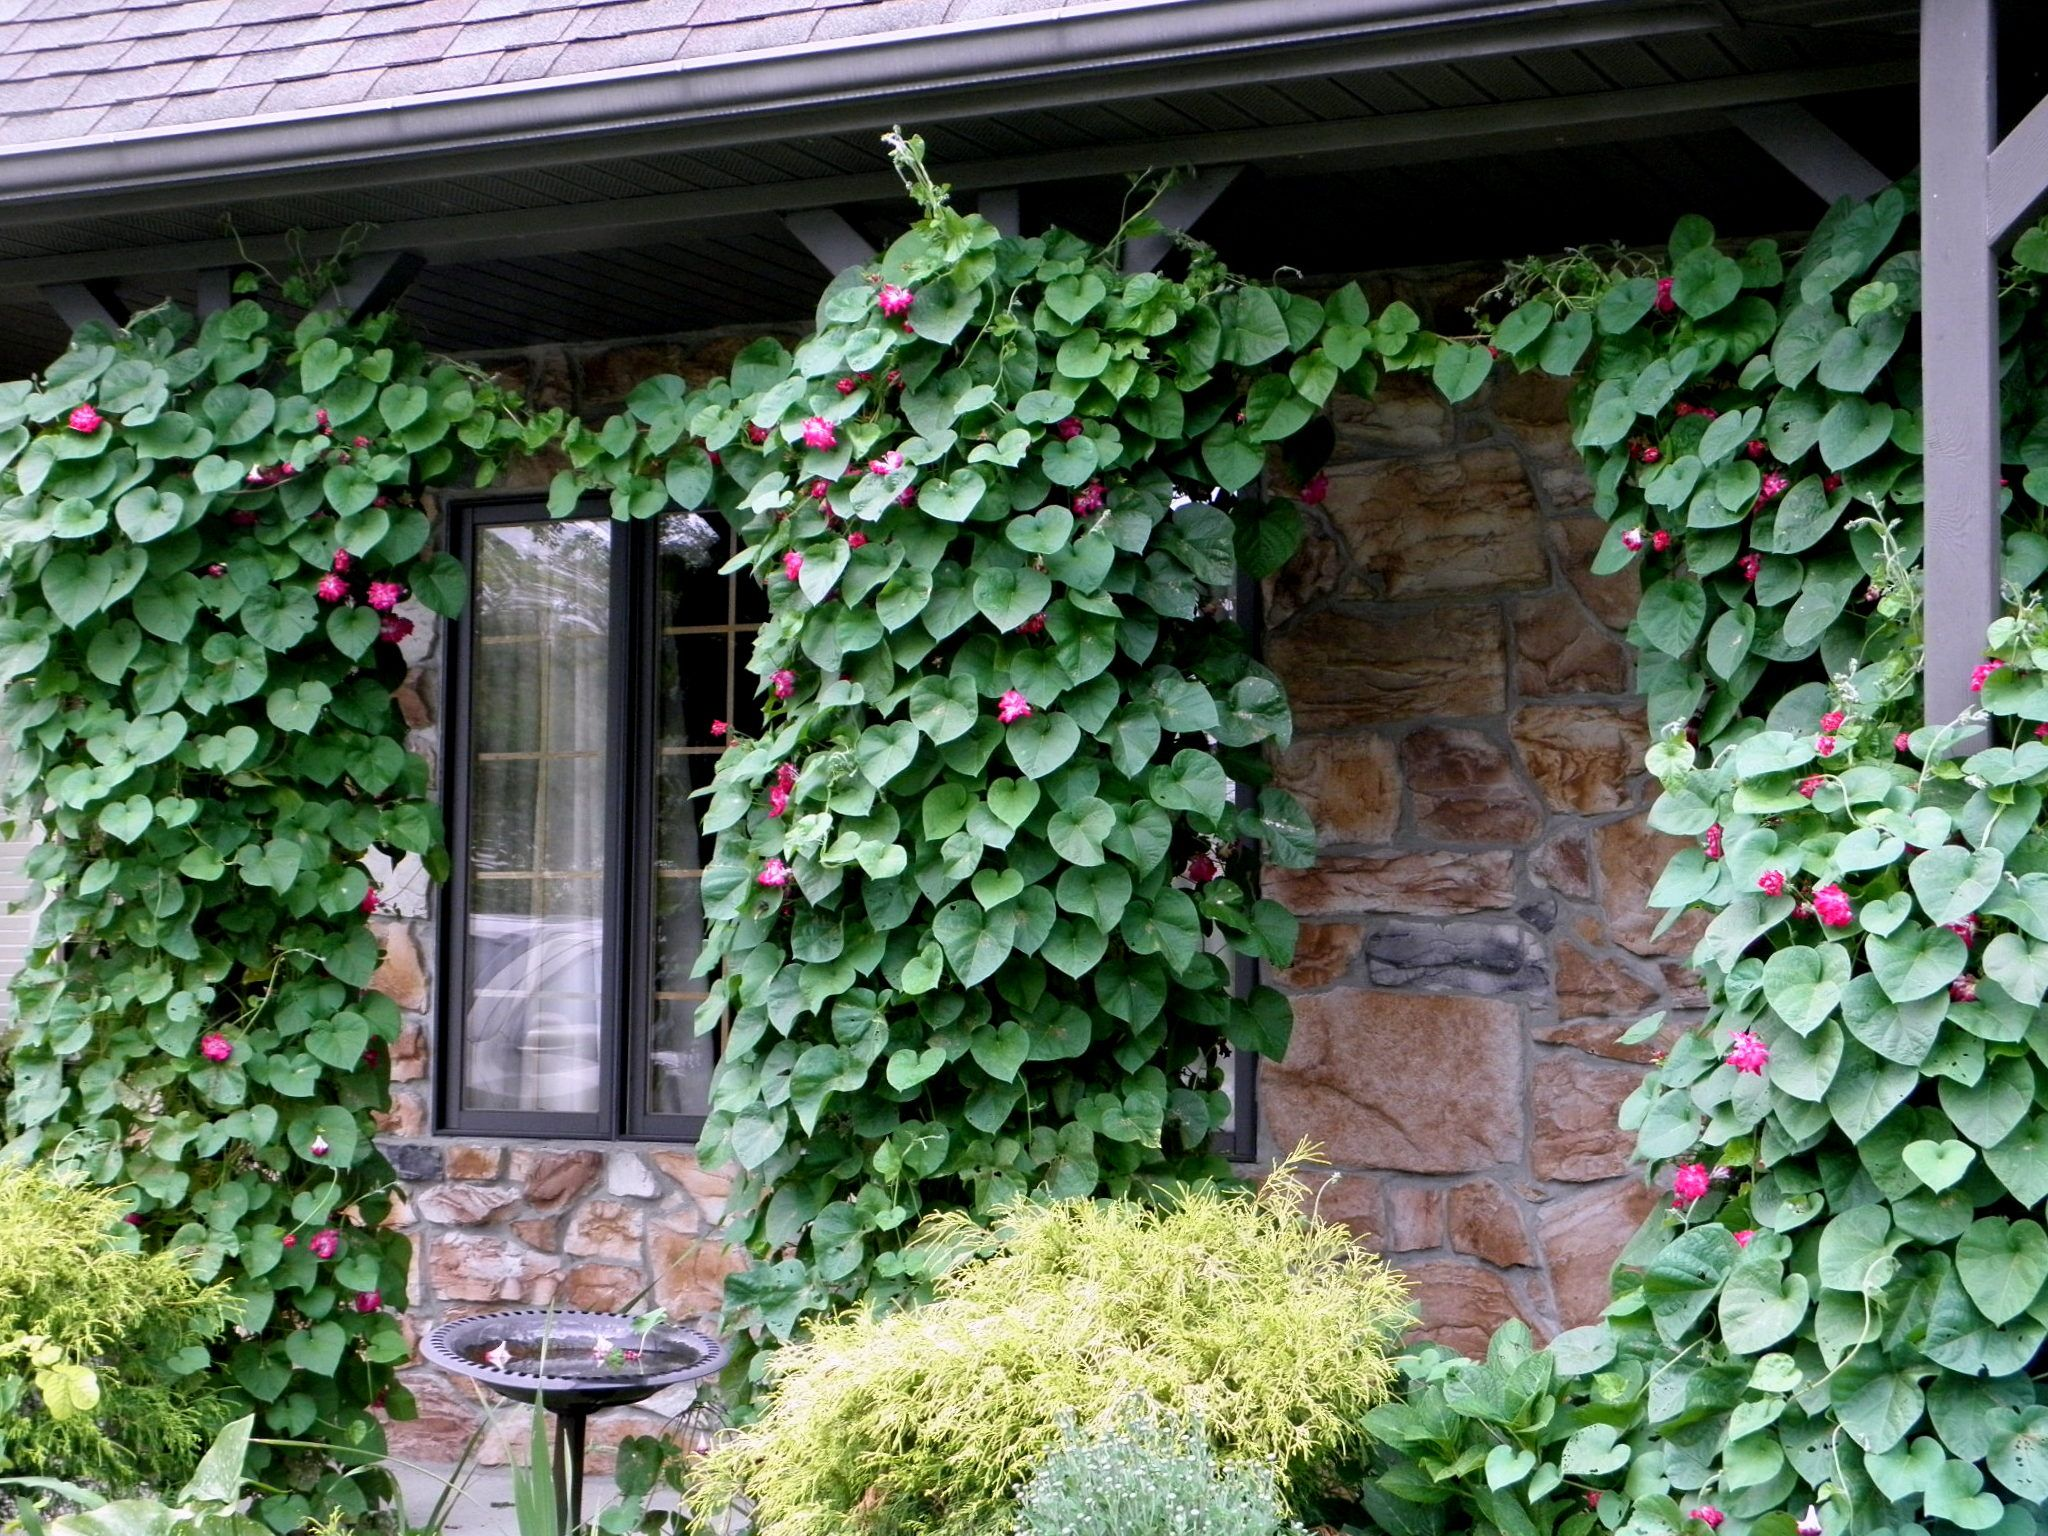 My morning glories were abundantly glorious!  Summer, 2012.  My plants did very well on East facing porch.  (photo by K Fuhs)